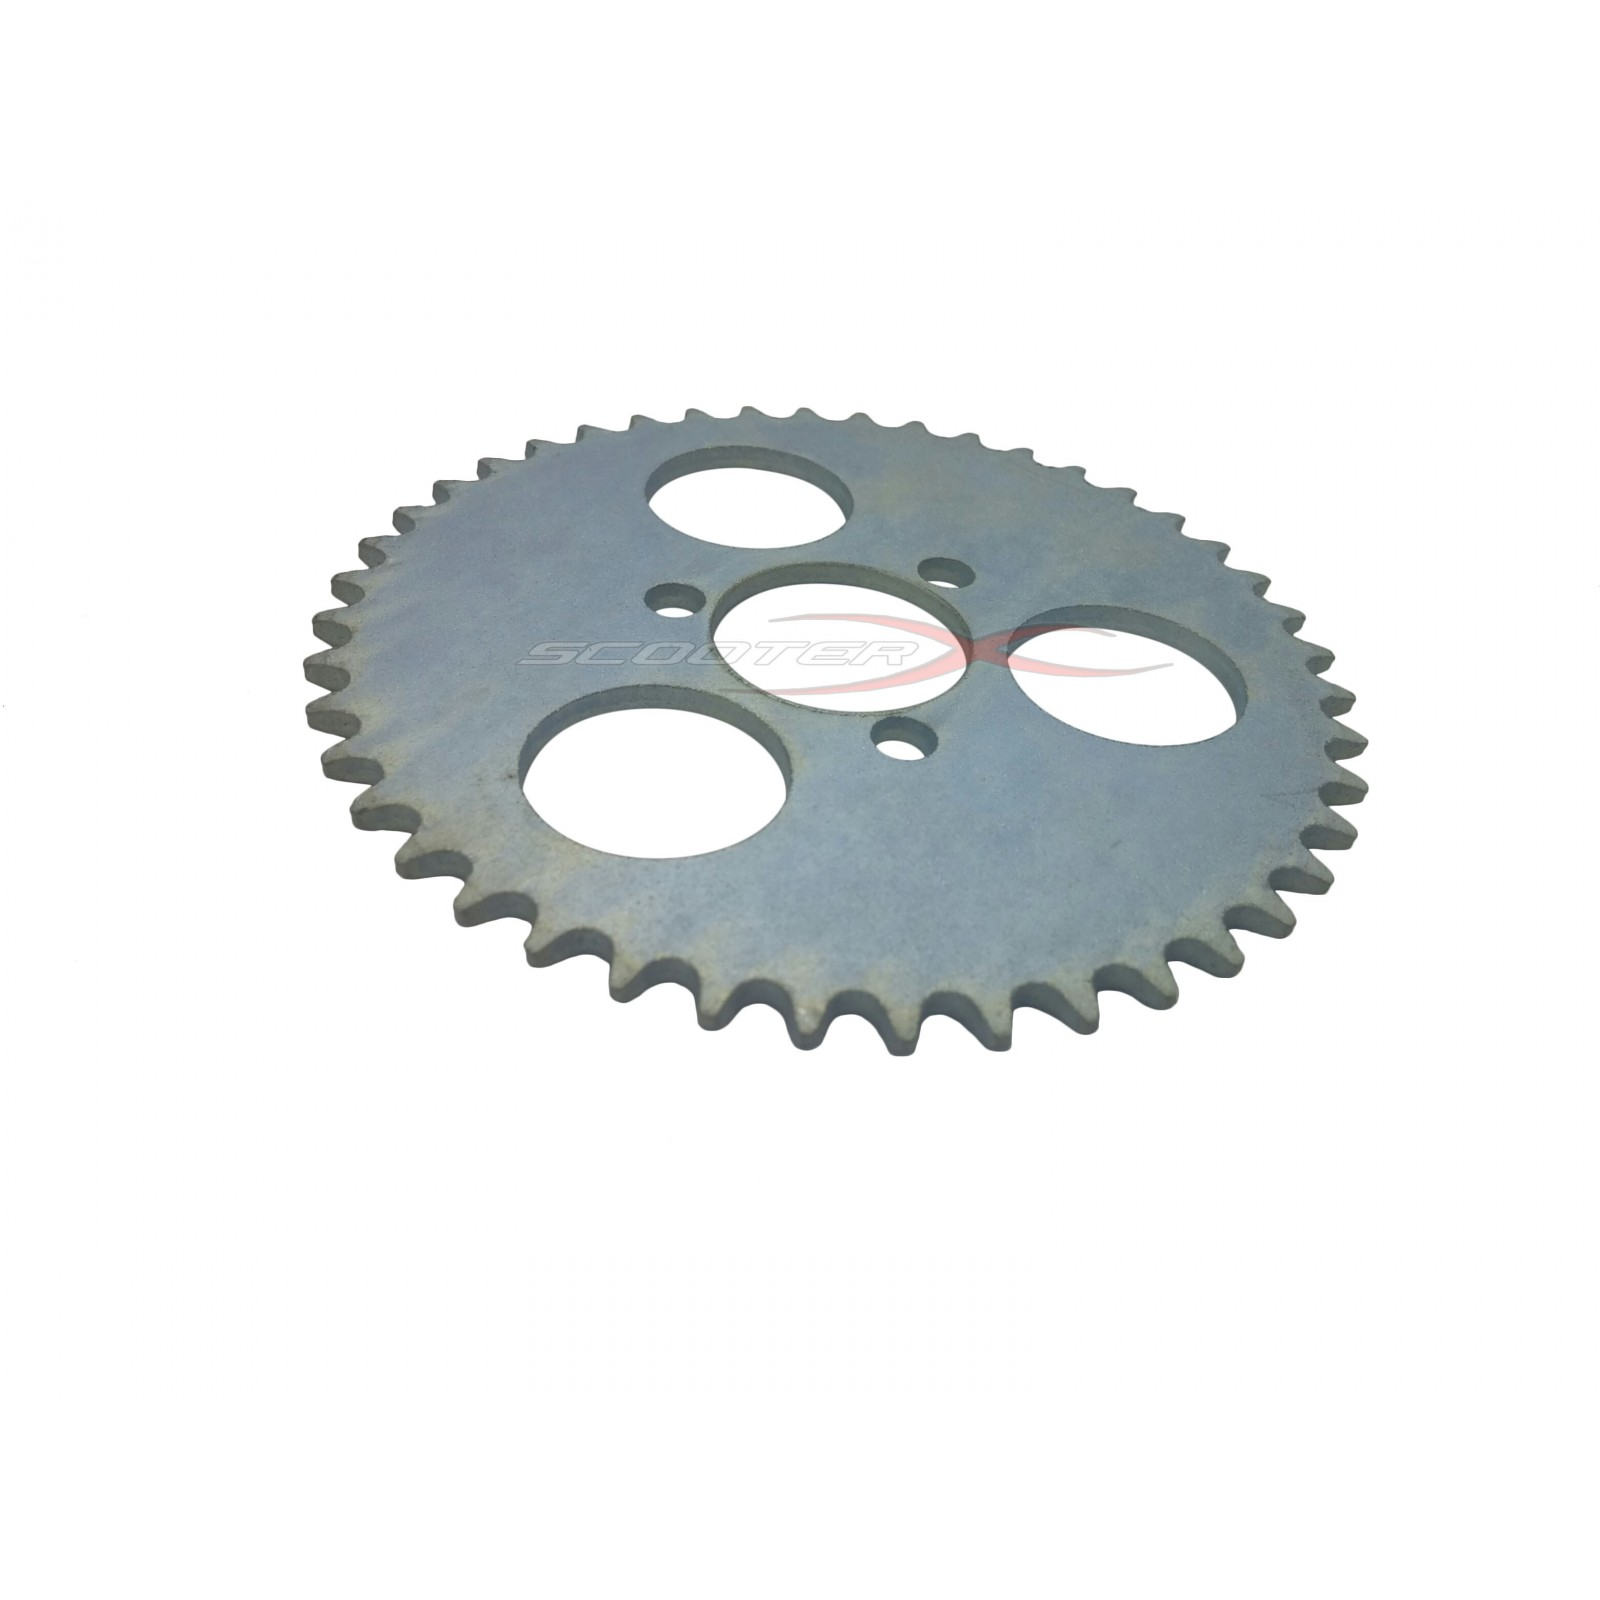 8mm 44 Tooth Gear Sprocket For The Scooterx Dirt Dog Or X